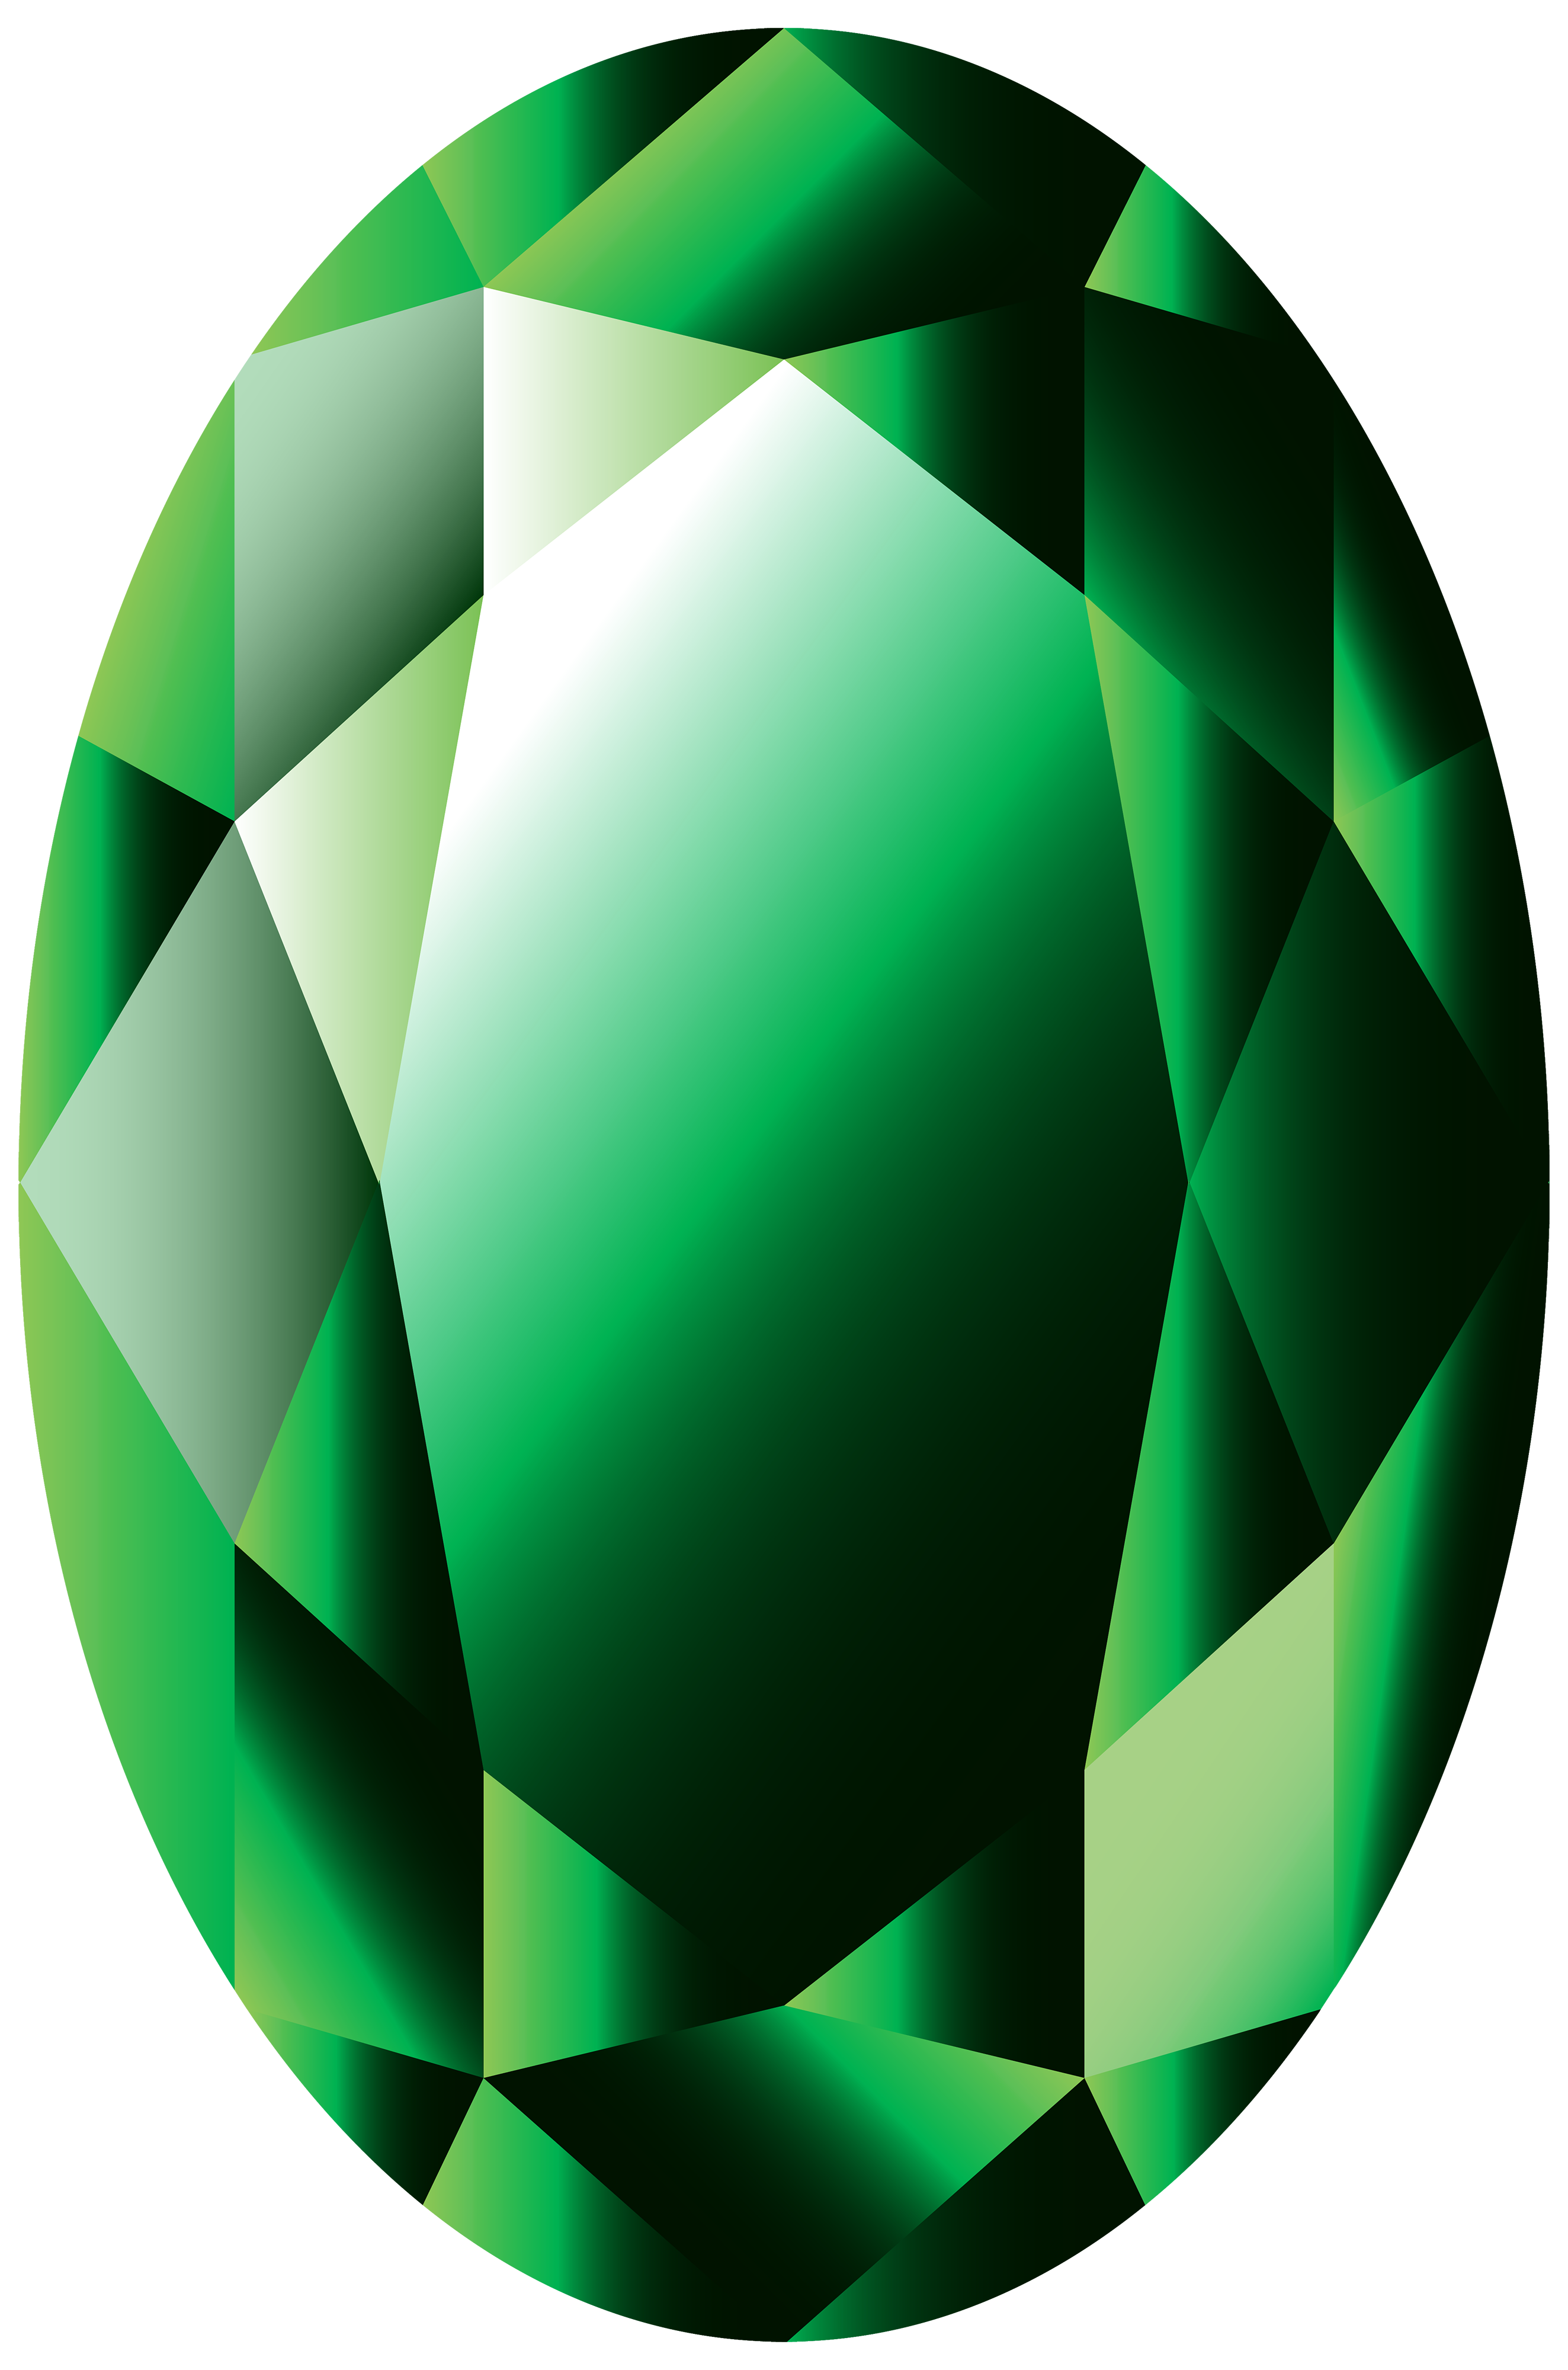 Round emerald gems cliparts banner freeuse download Oval Emerald PNG Clipart - Best WEB Clipart banner freeuse download